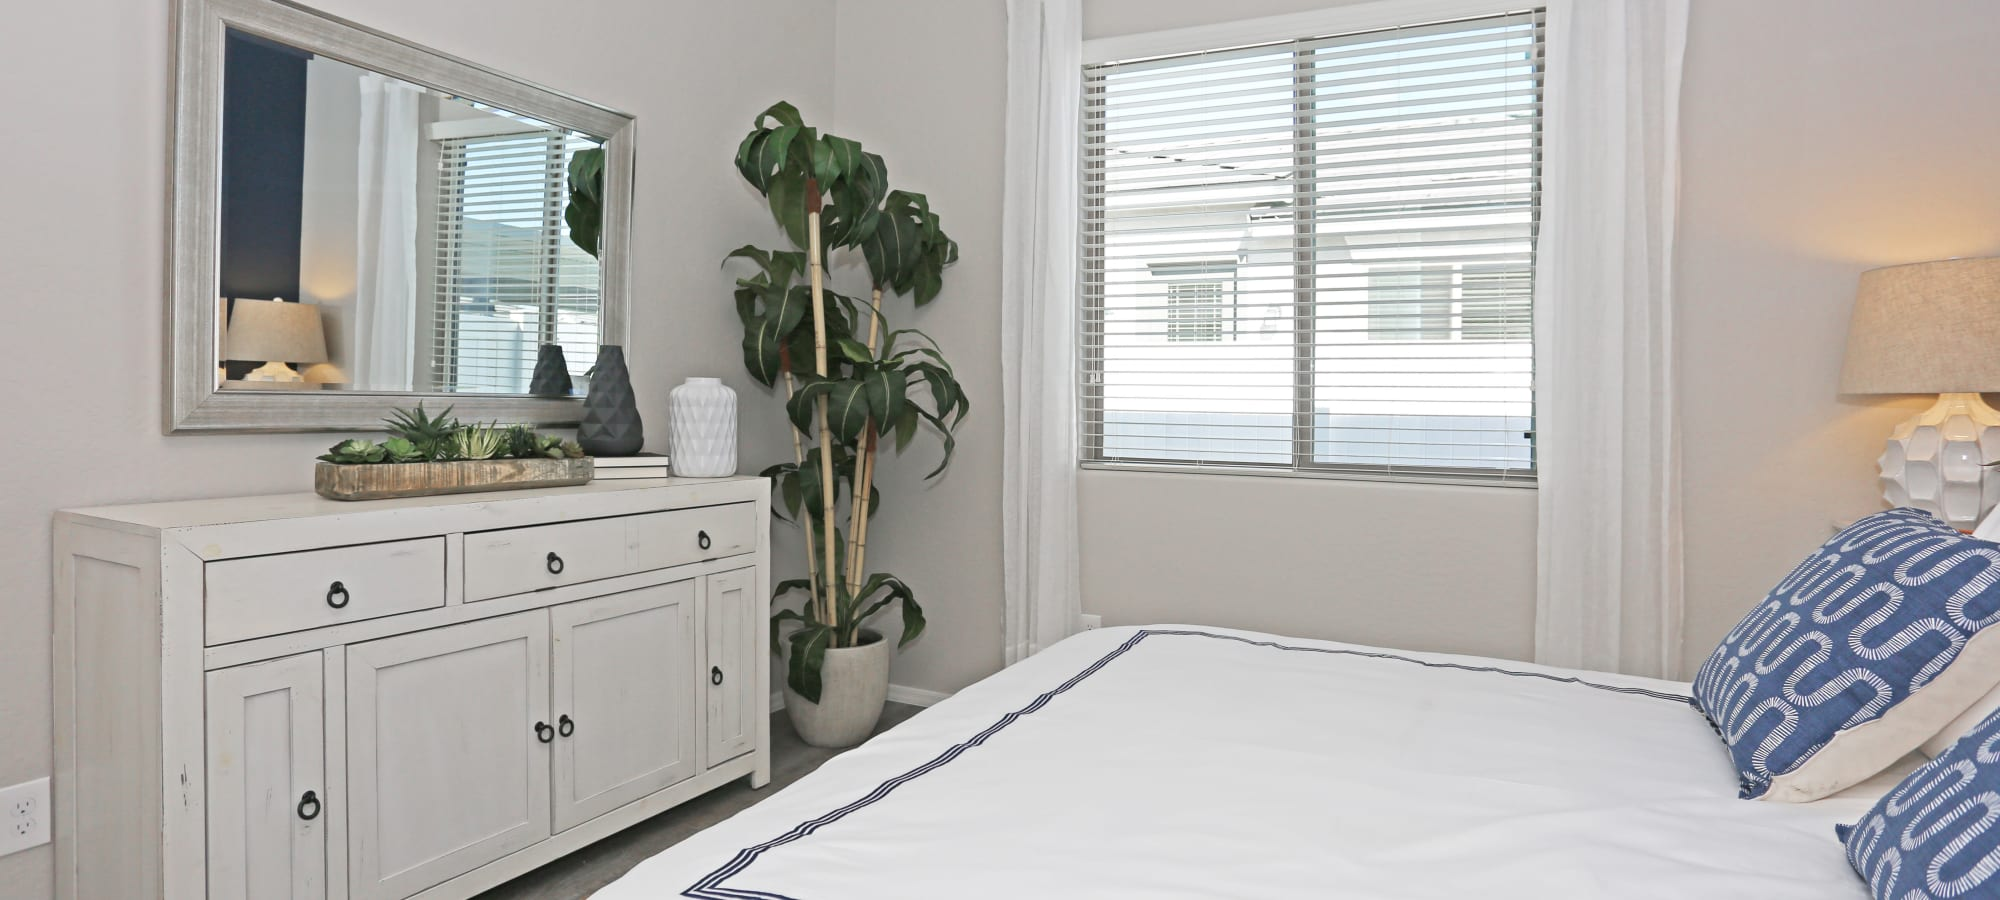 Well-decorated bedroom in a model home at Christopher Todd Communities On Happy Valley in Peoria, Arizona